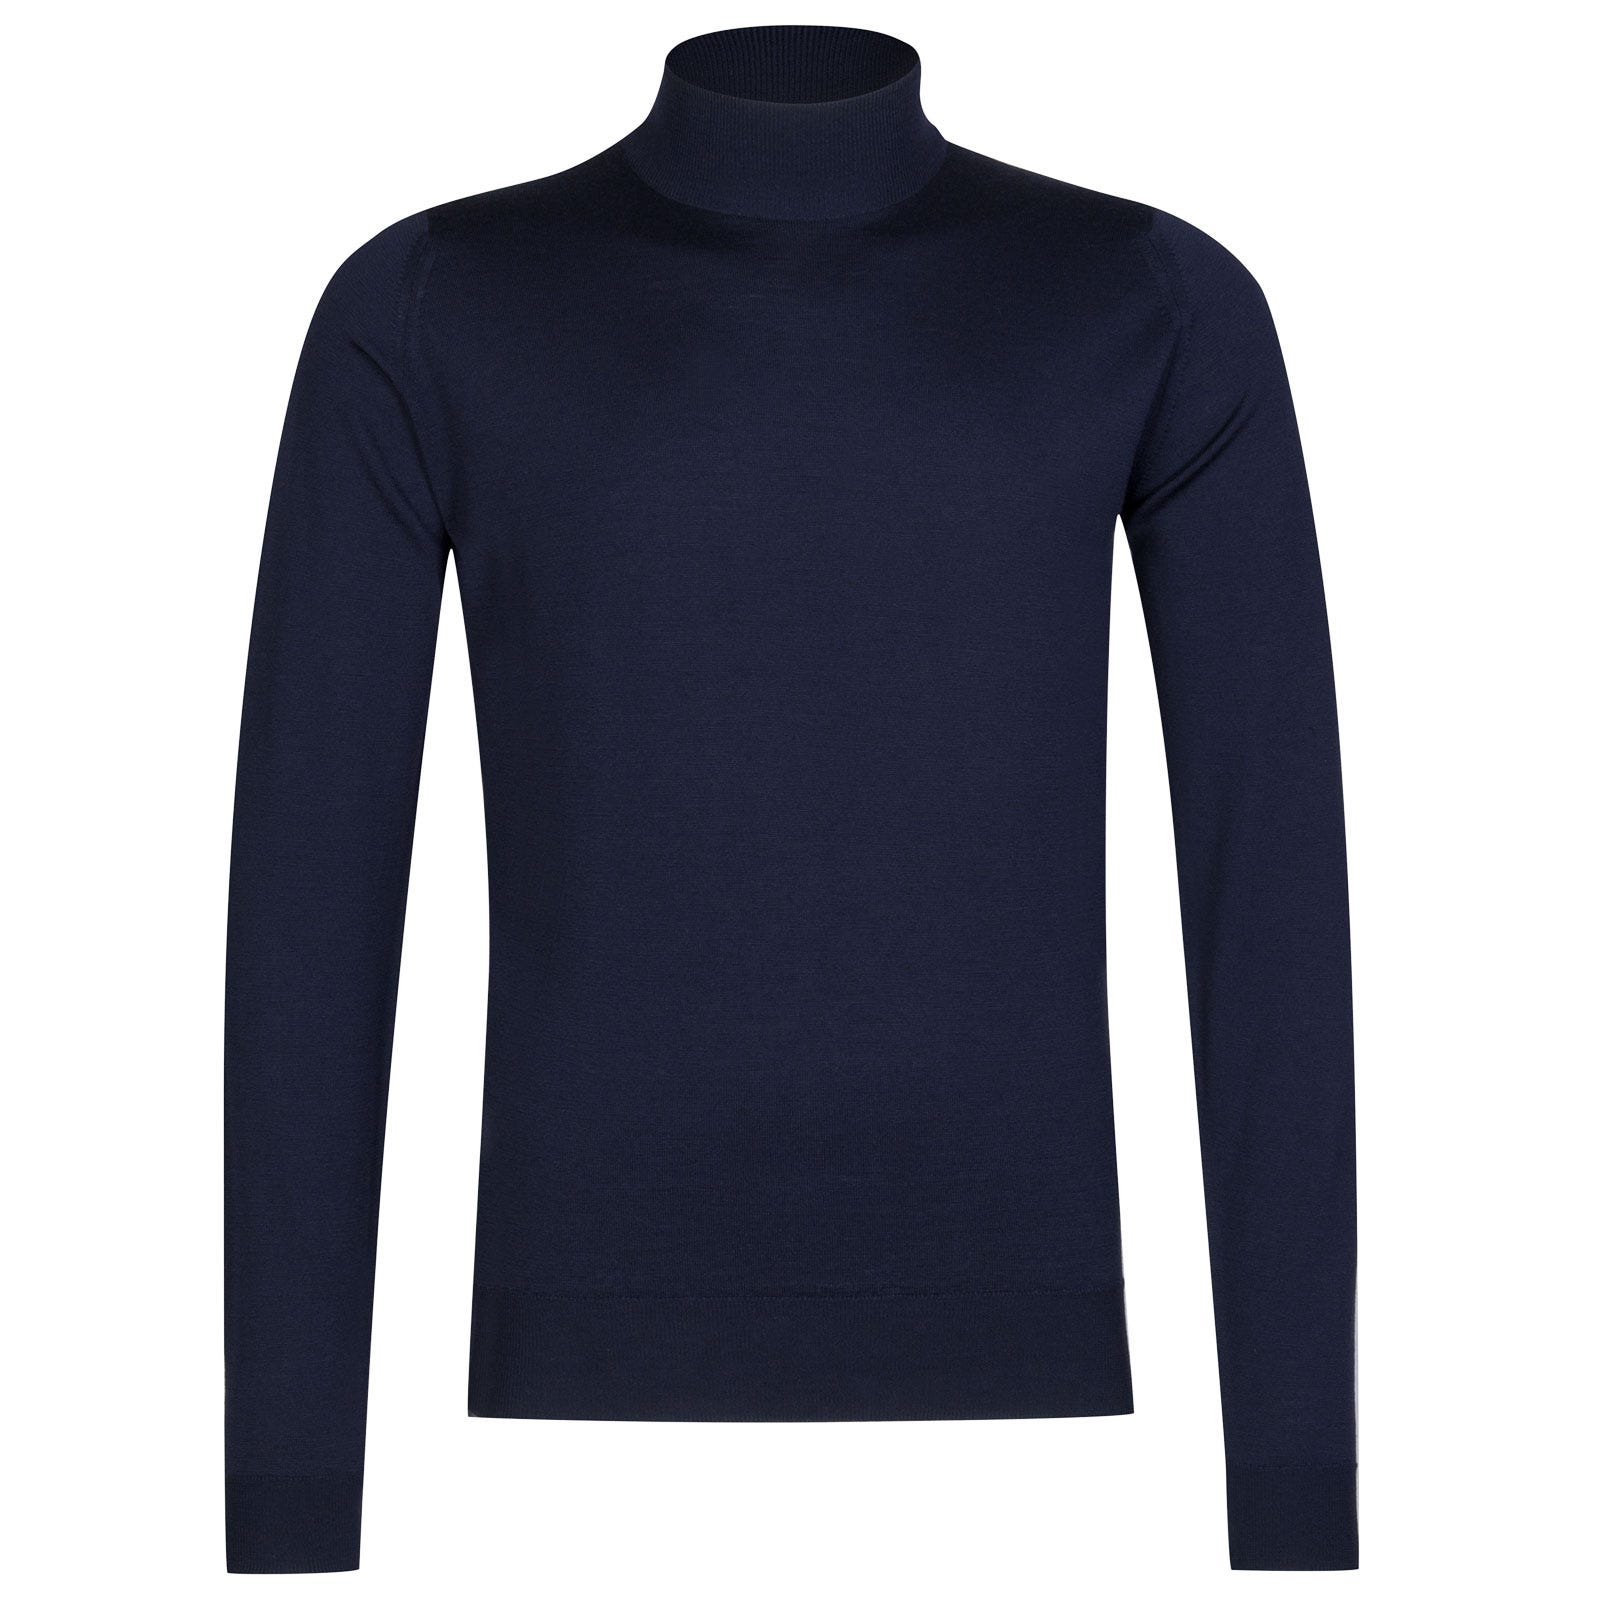 John Smedley harcourt Merino Wool Pullover in Midnight-L